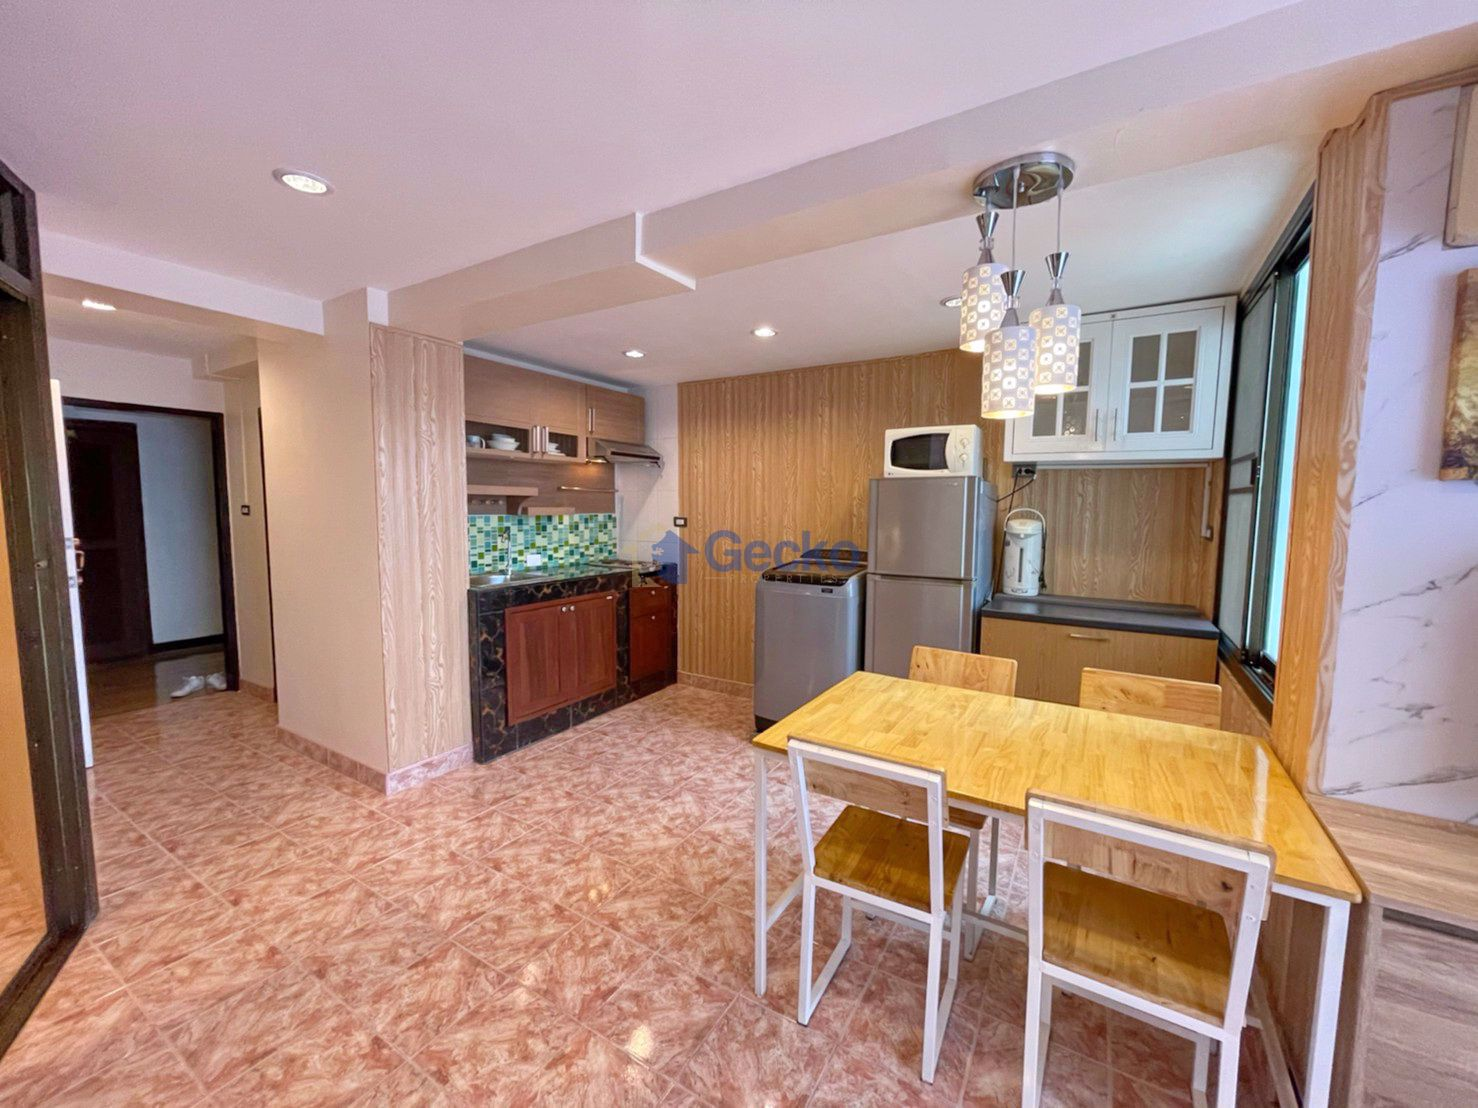 Picture of 1  Bedroom bed in Condo in Center Condotel in South Pattaya C009235